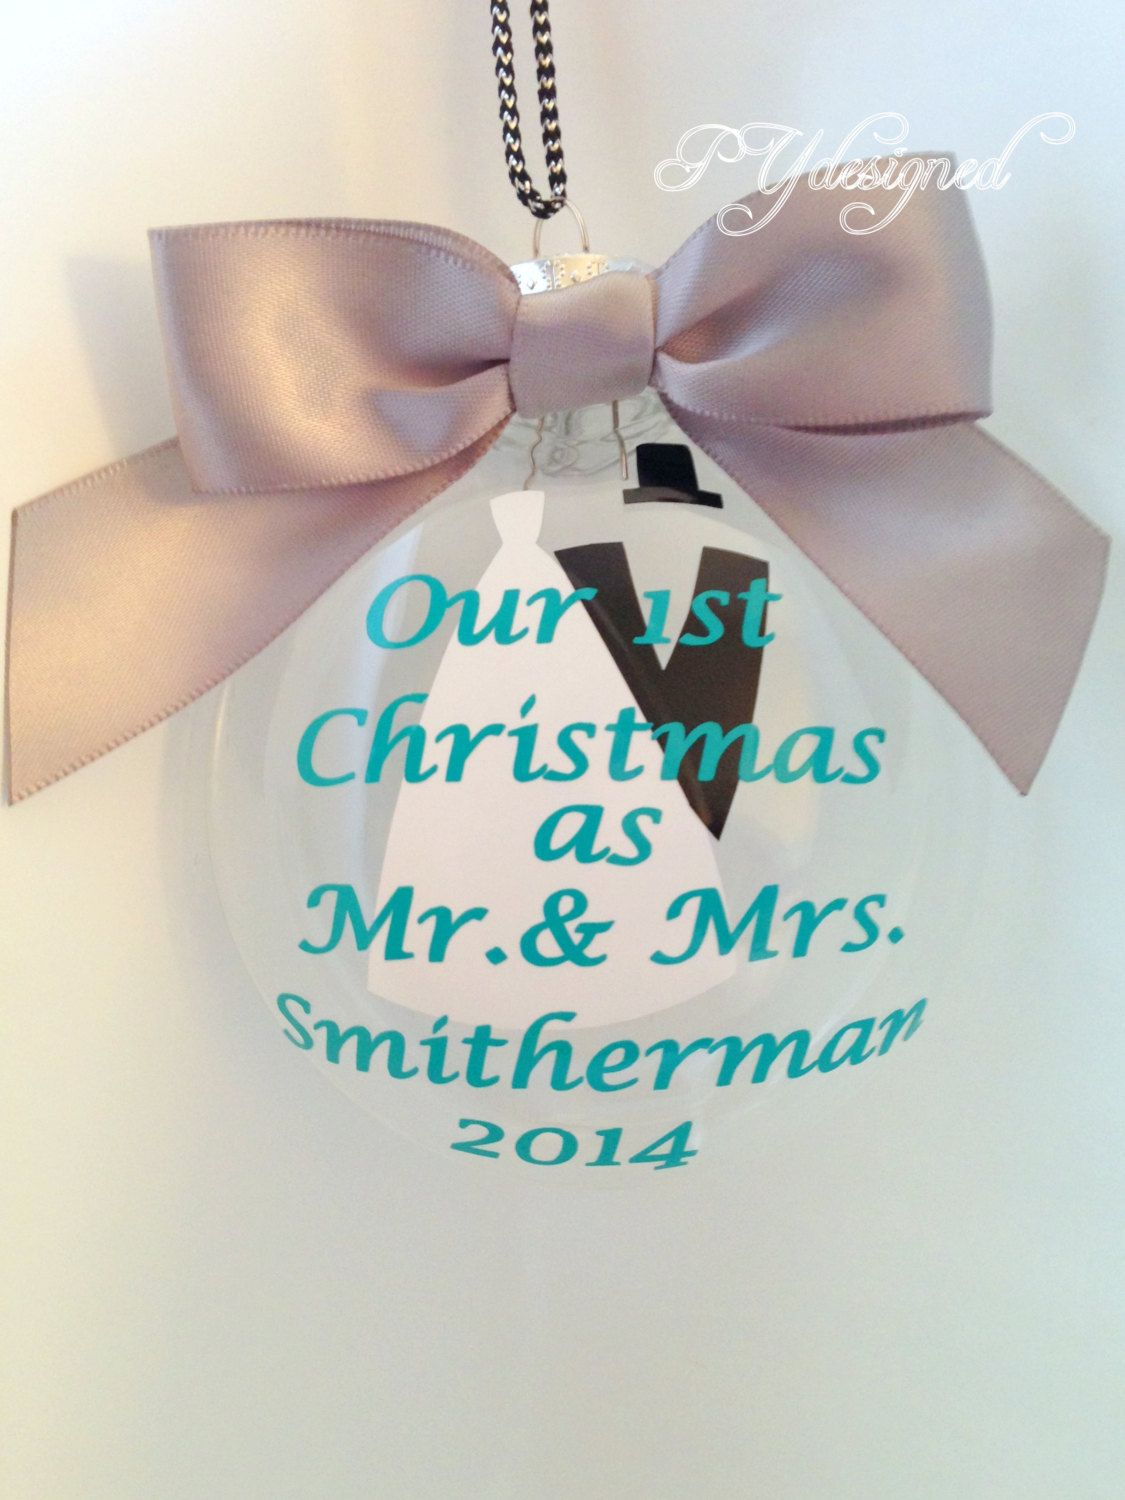 Newlywed ornament - Our First Christmas Ornament Personalized With Gift Box For Newlyweds By Pydesigned On Etsy